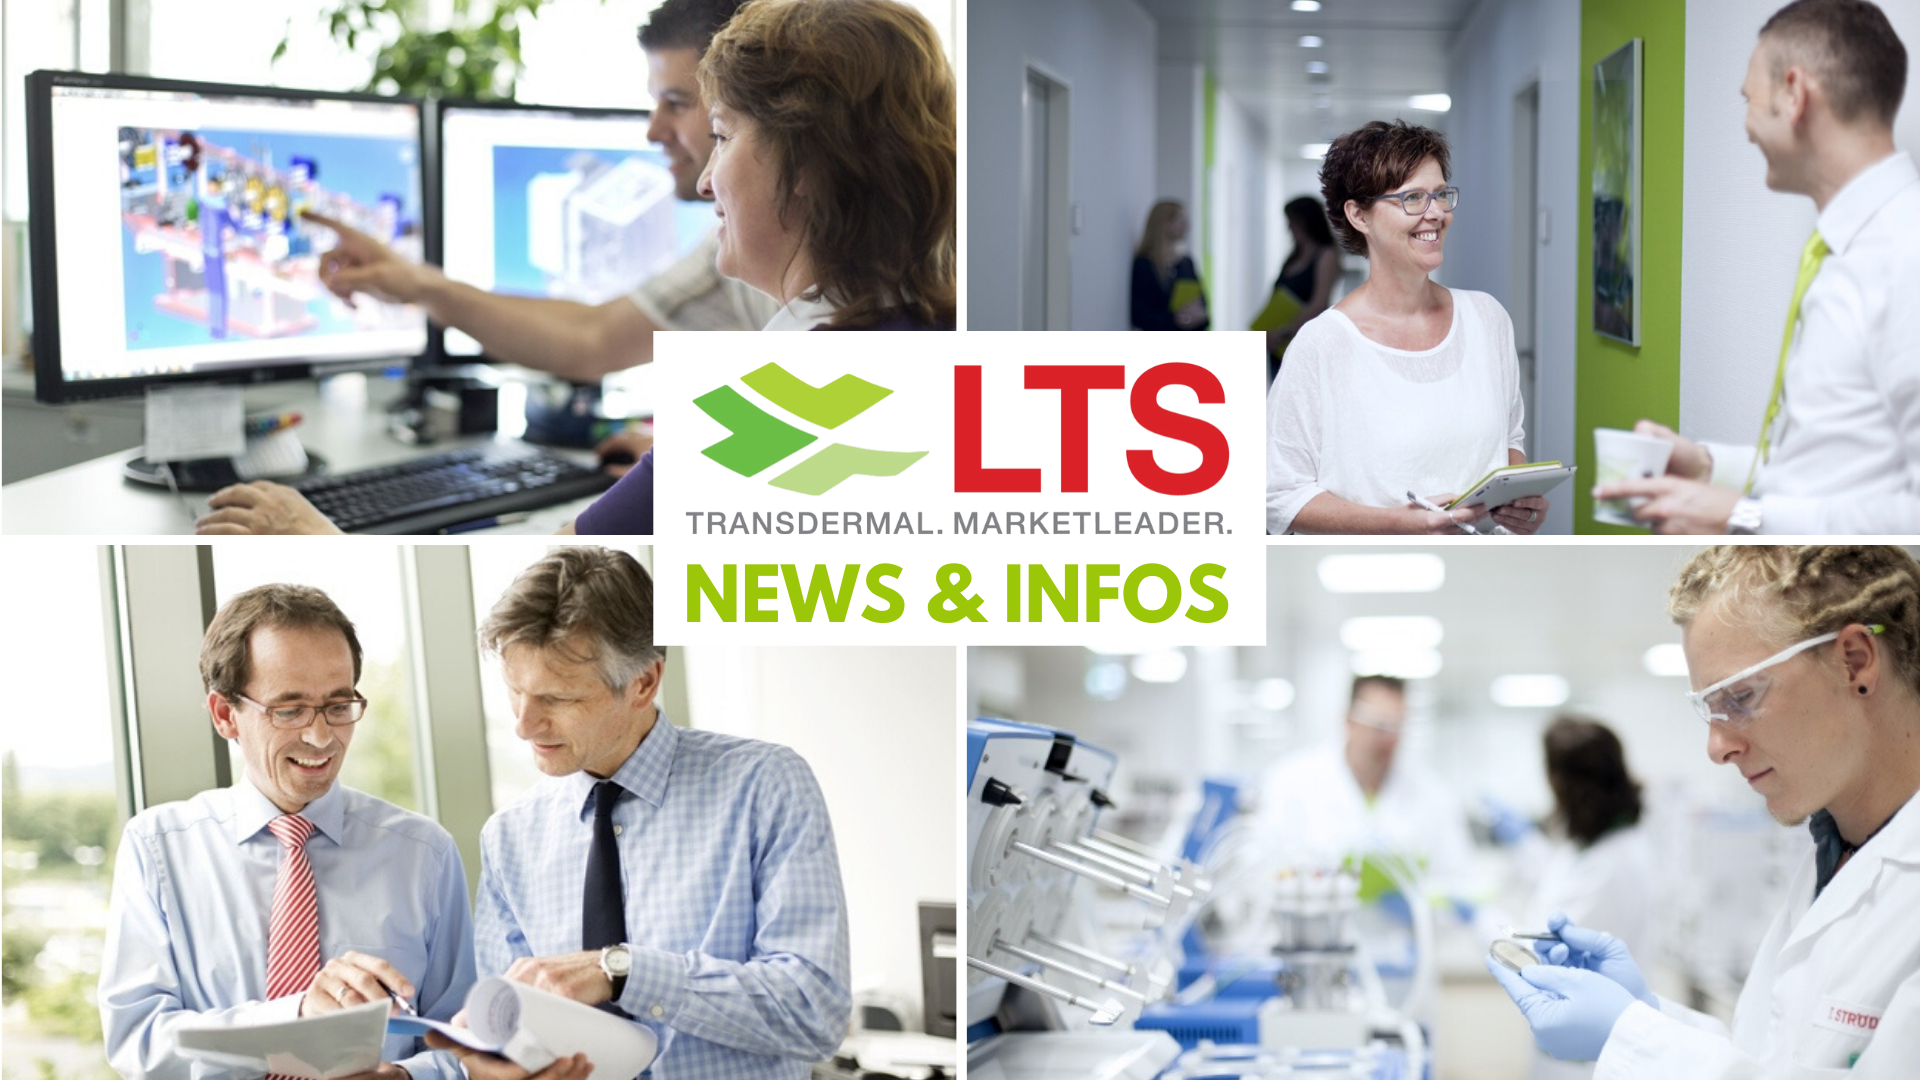 Find news and infos about LTS